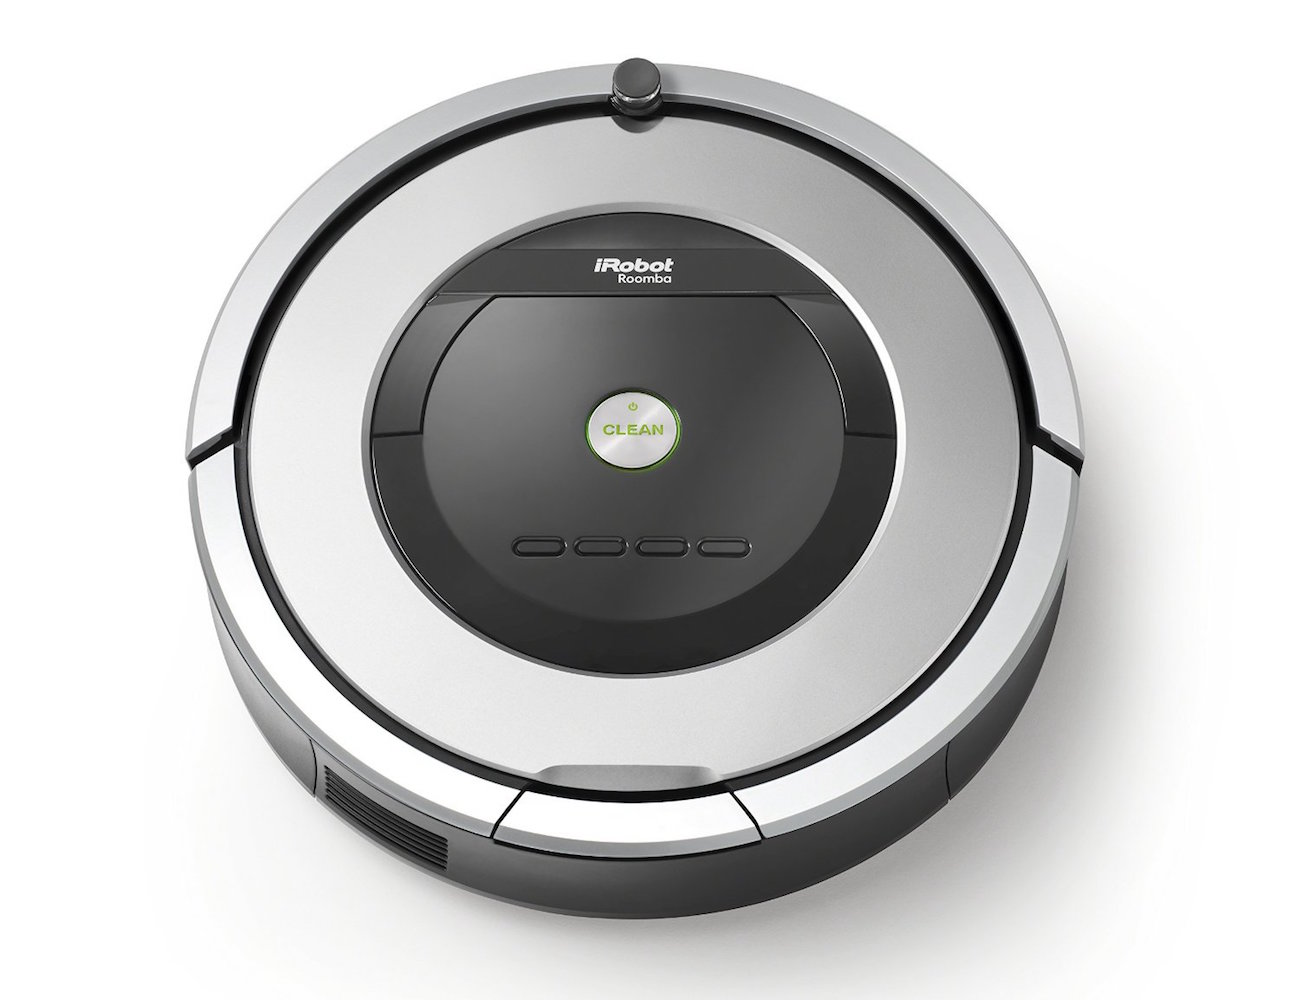 iRobot Roomba 860 Vacuum Cleaning Robot » Gadget Flow